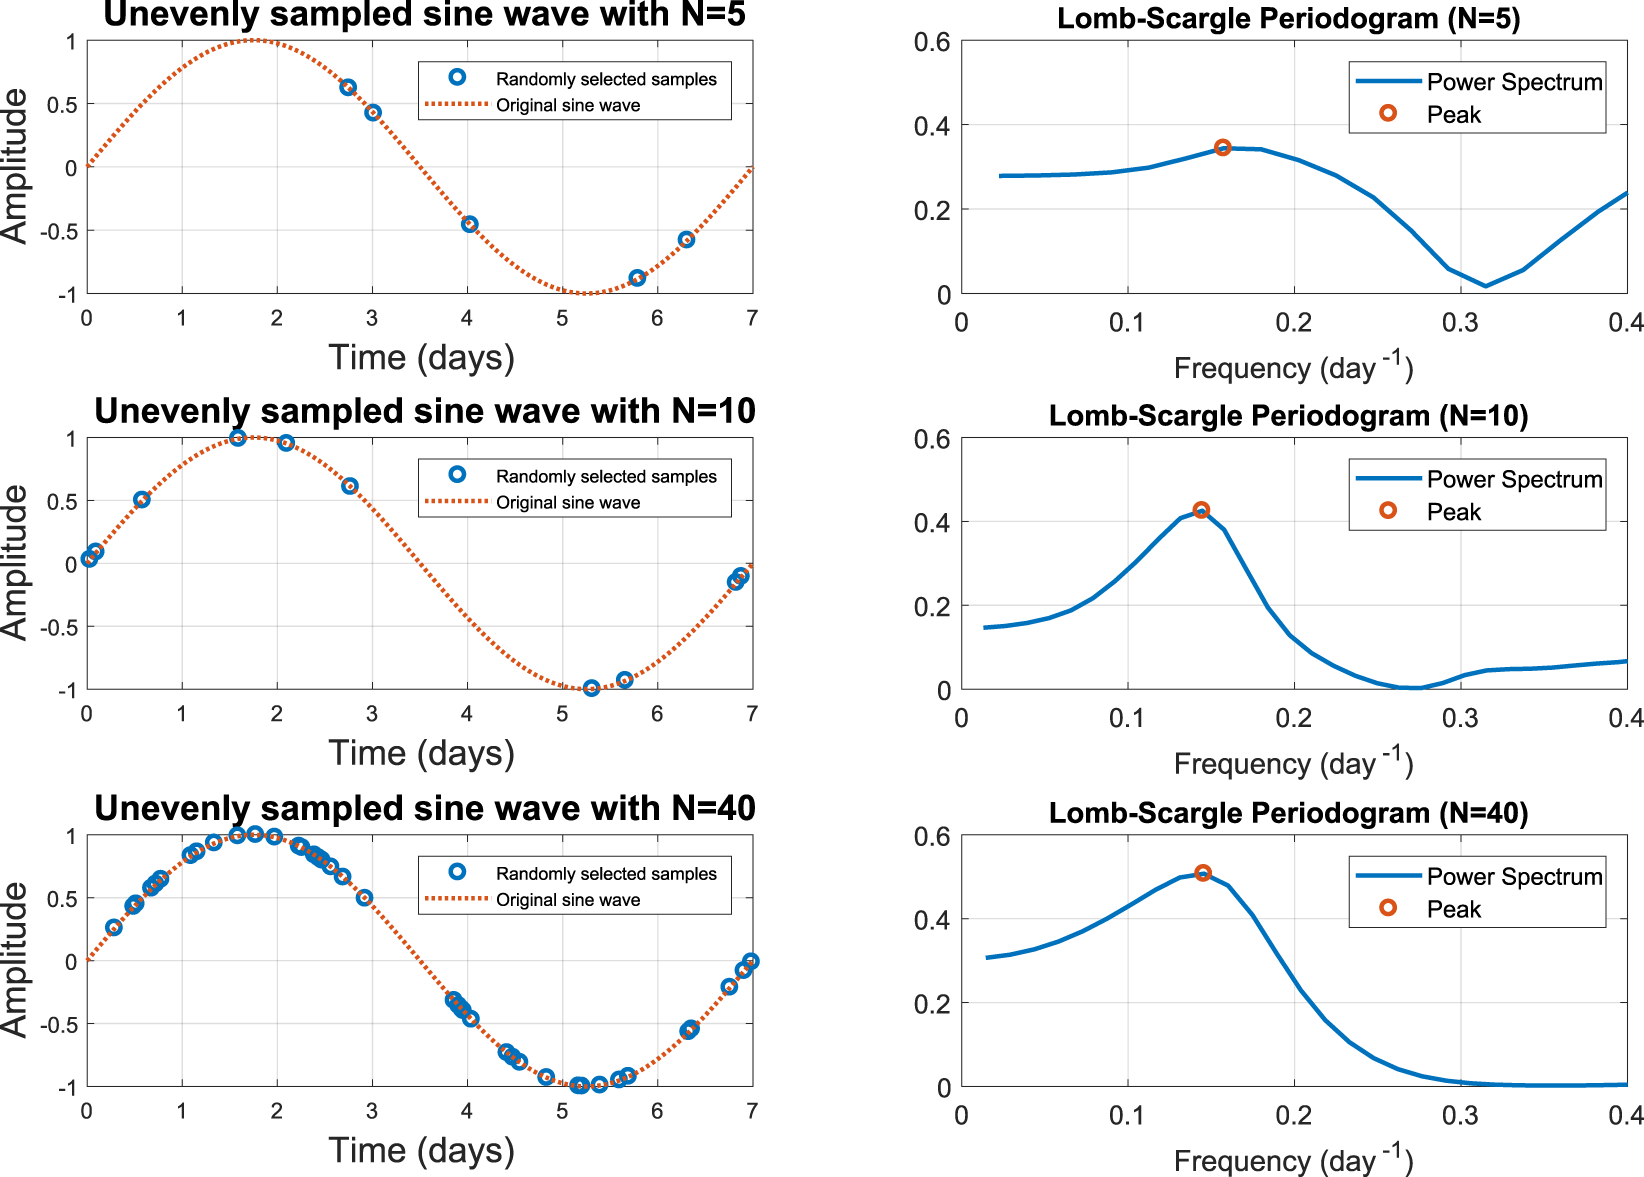 On detection of periodicity in C-reactive protein (CRP) levels